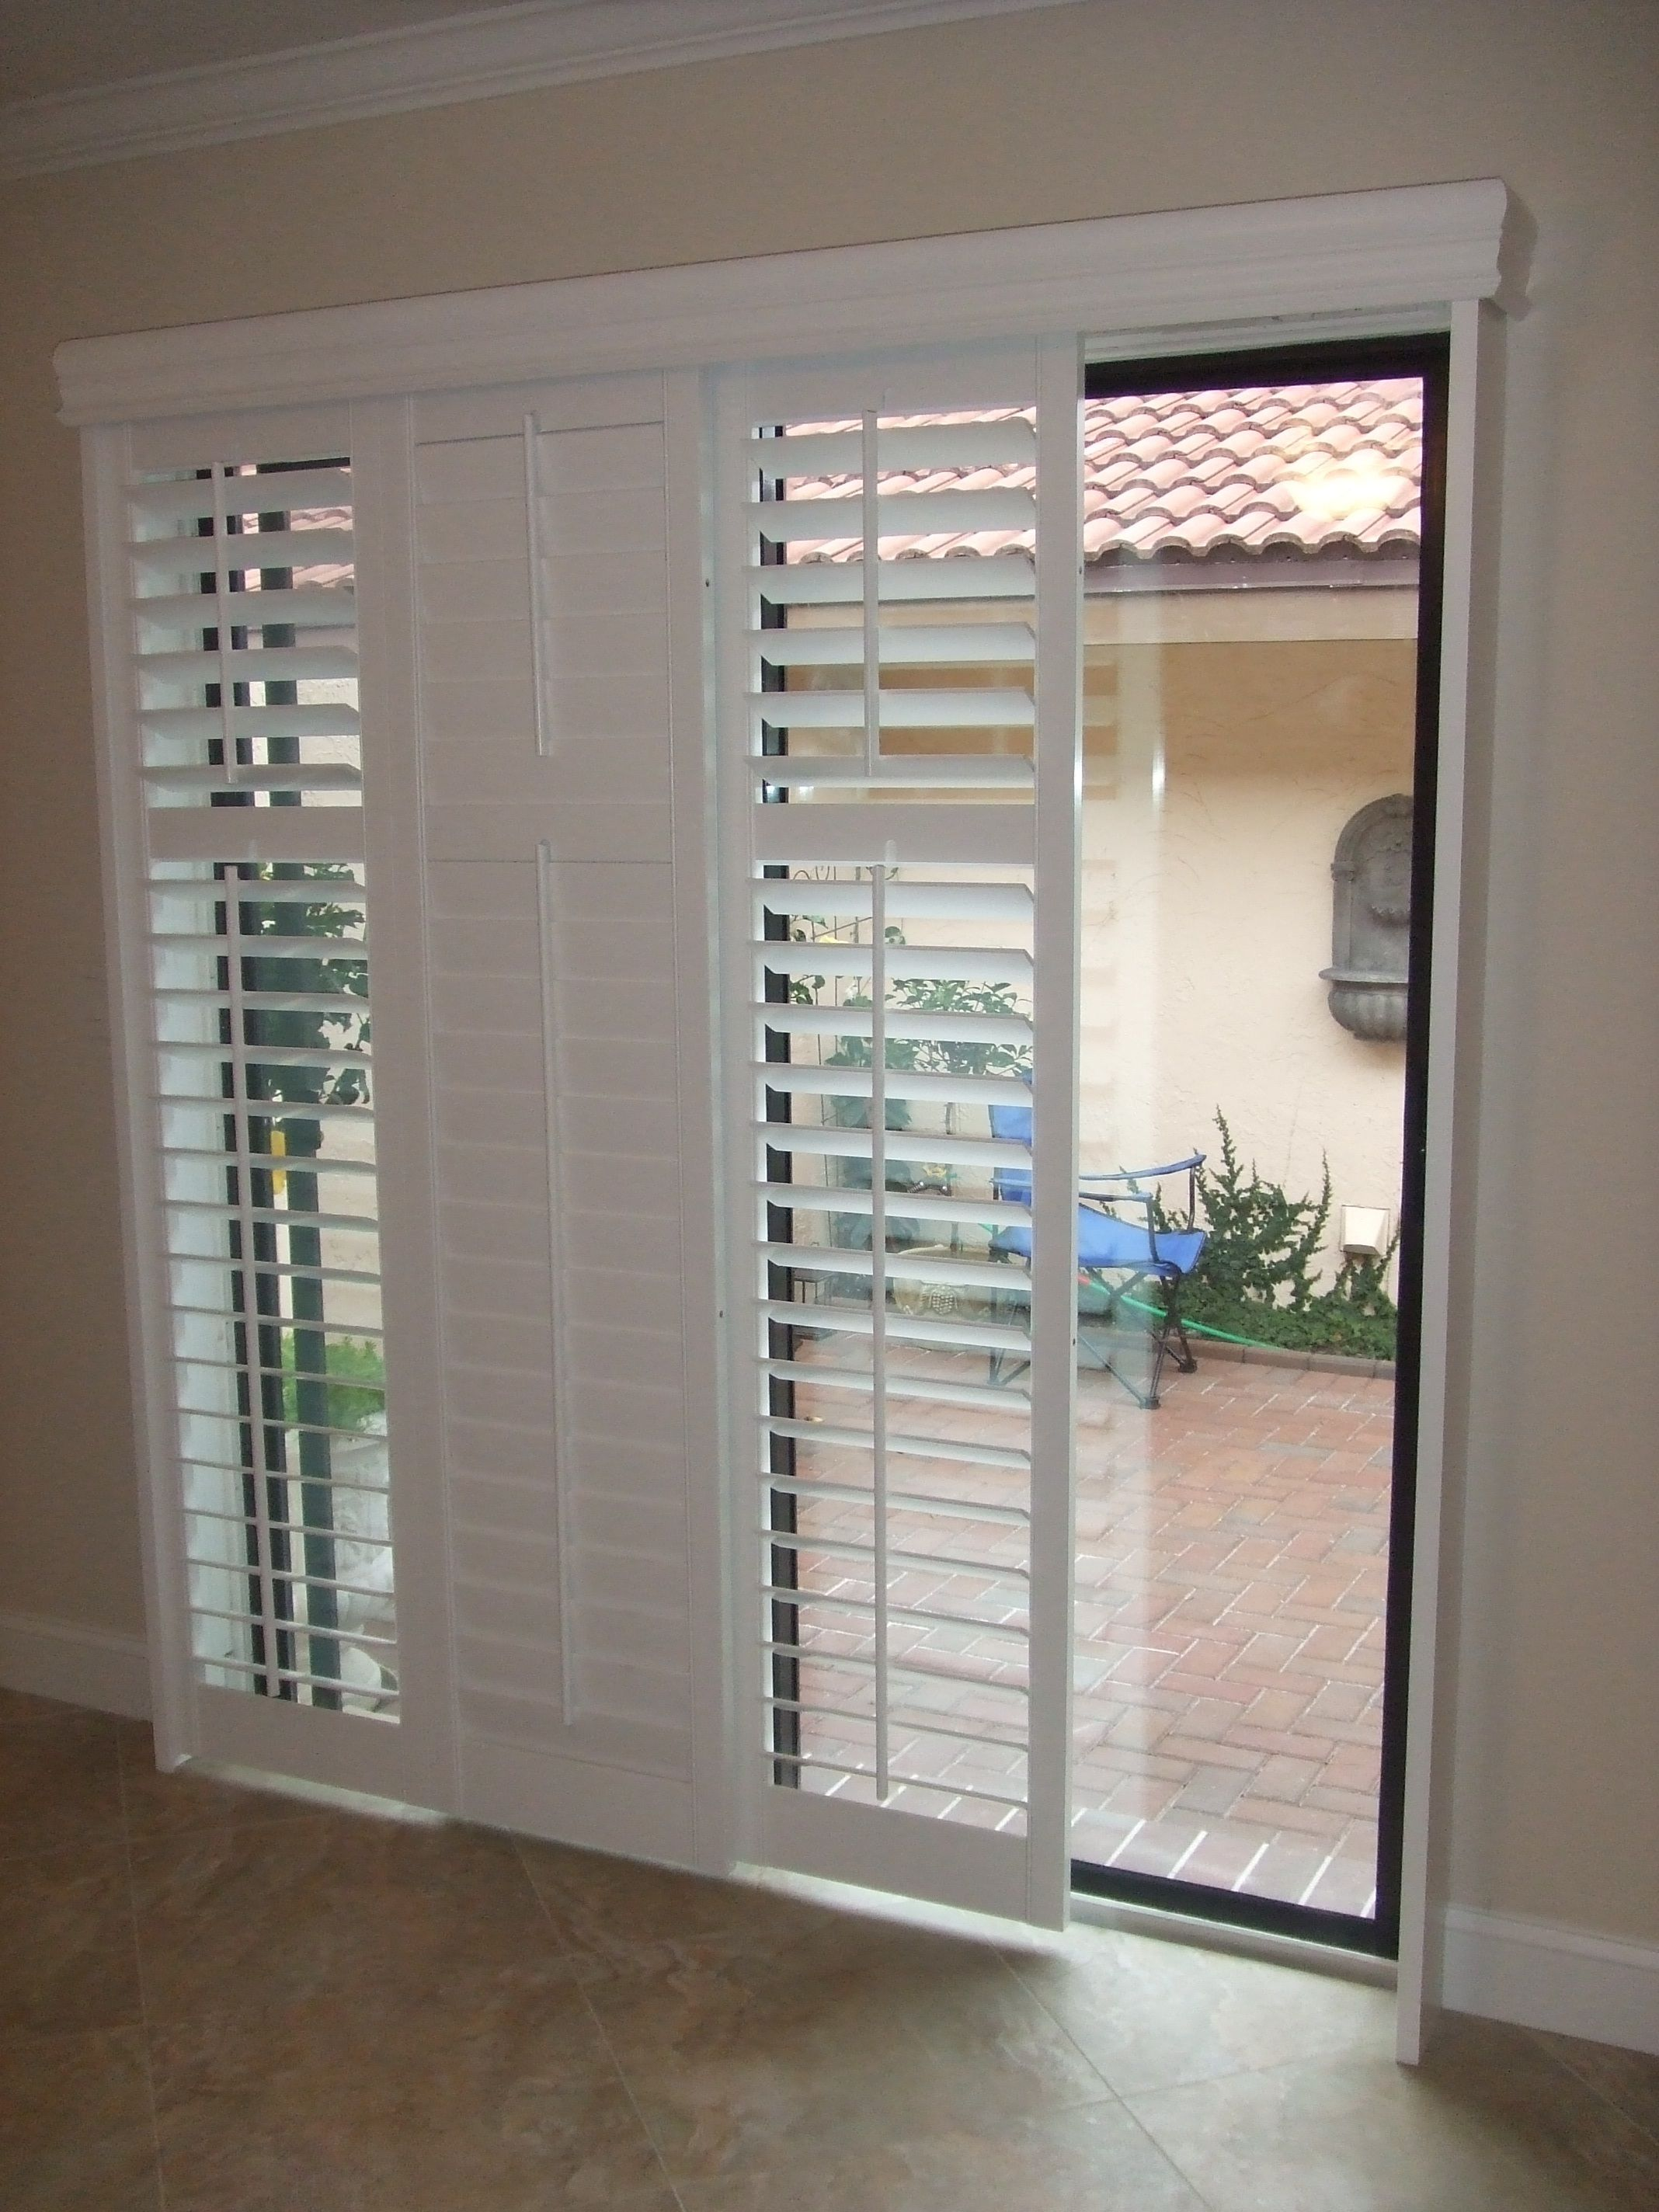 shades amusing outstanding glass doors patio enclosed door roman blinds ideas brown for sliding